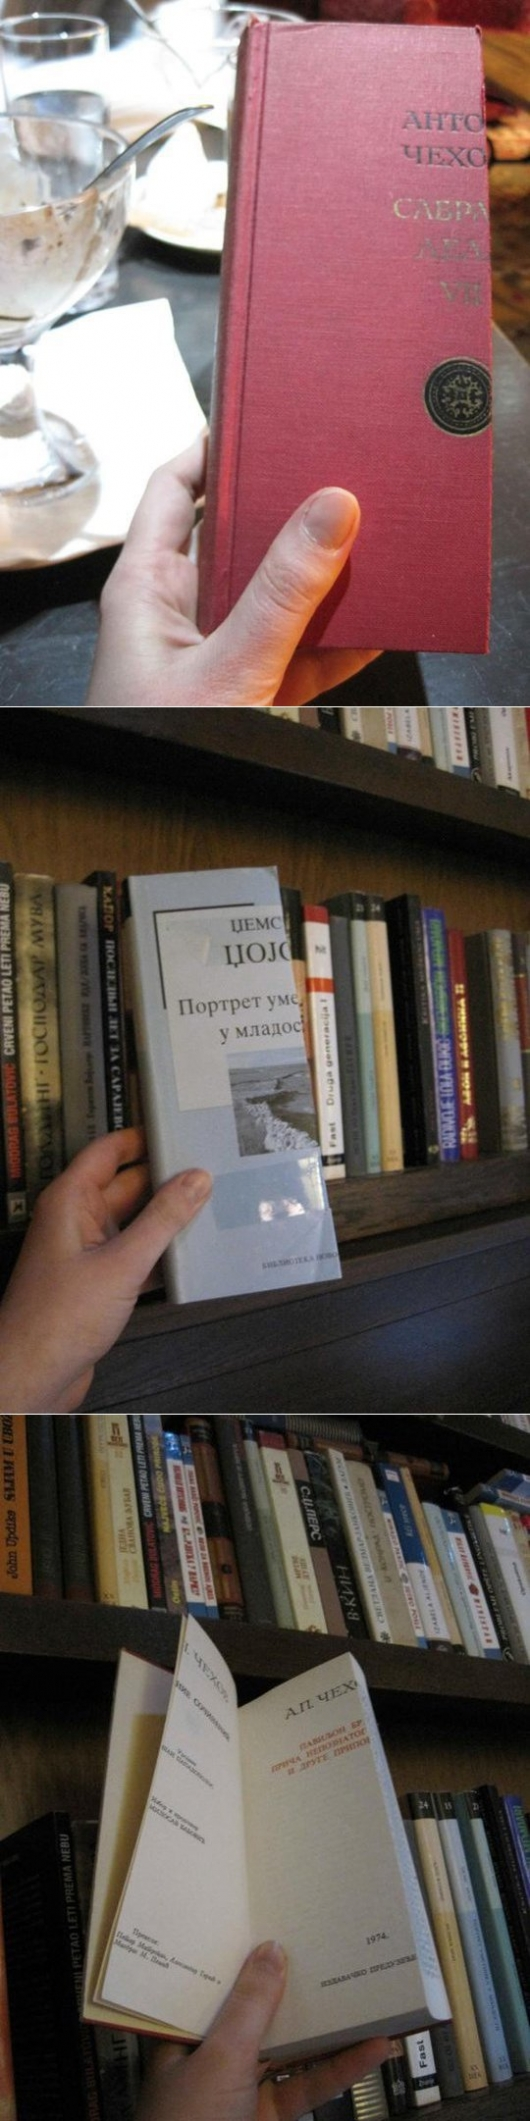 Just for the looks: half-books on a shelf